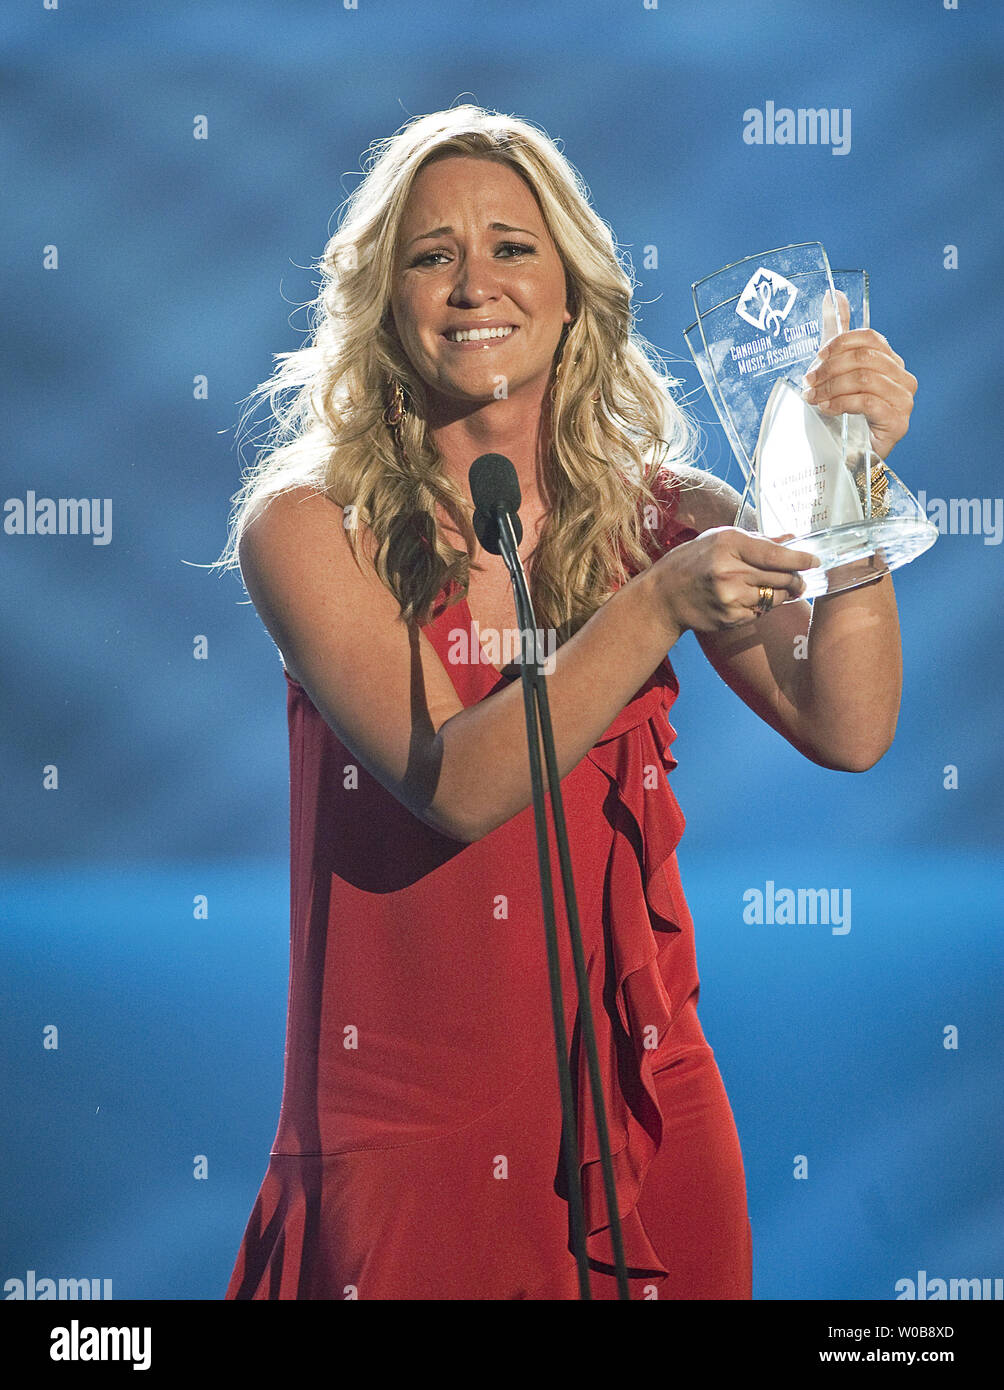 A tearful Tara Oram celebrates winning the CBC Rising Star award onstage during the 2009 Canadian Country Music Awards at GM Place in Vancouver, British Columbia, September 13, 2009.  UPI /Heinz Ruckemann - Stock Image